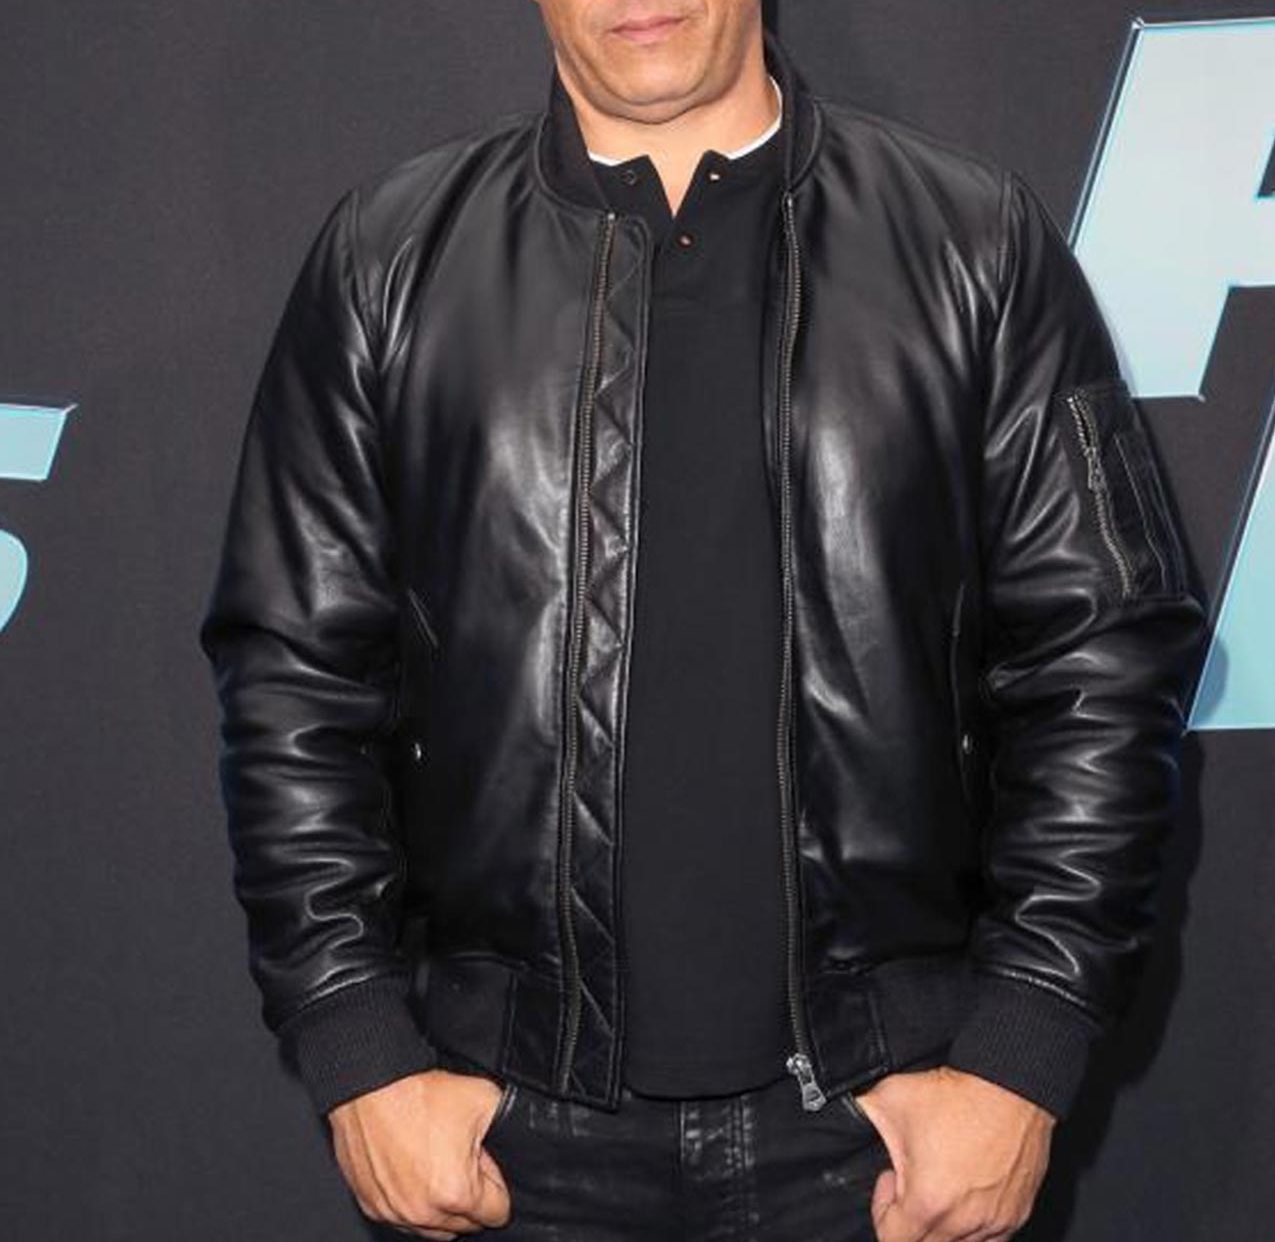 Vin Diesel Fast And Furious 9 Bomber Jacket